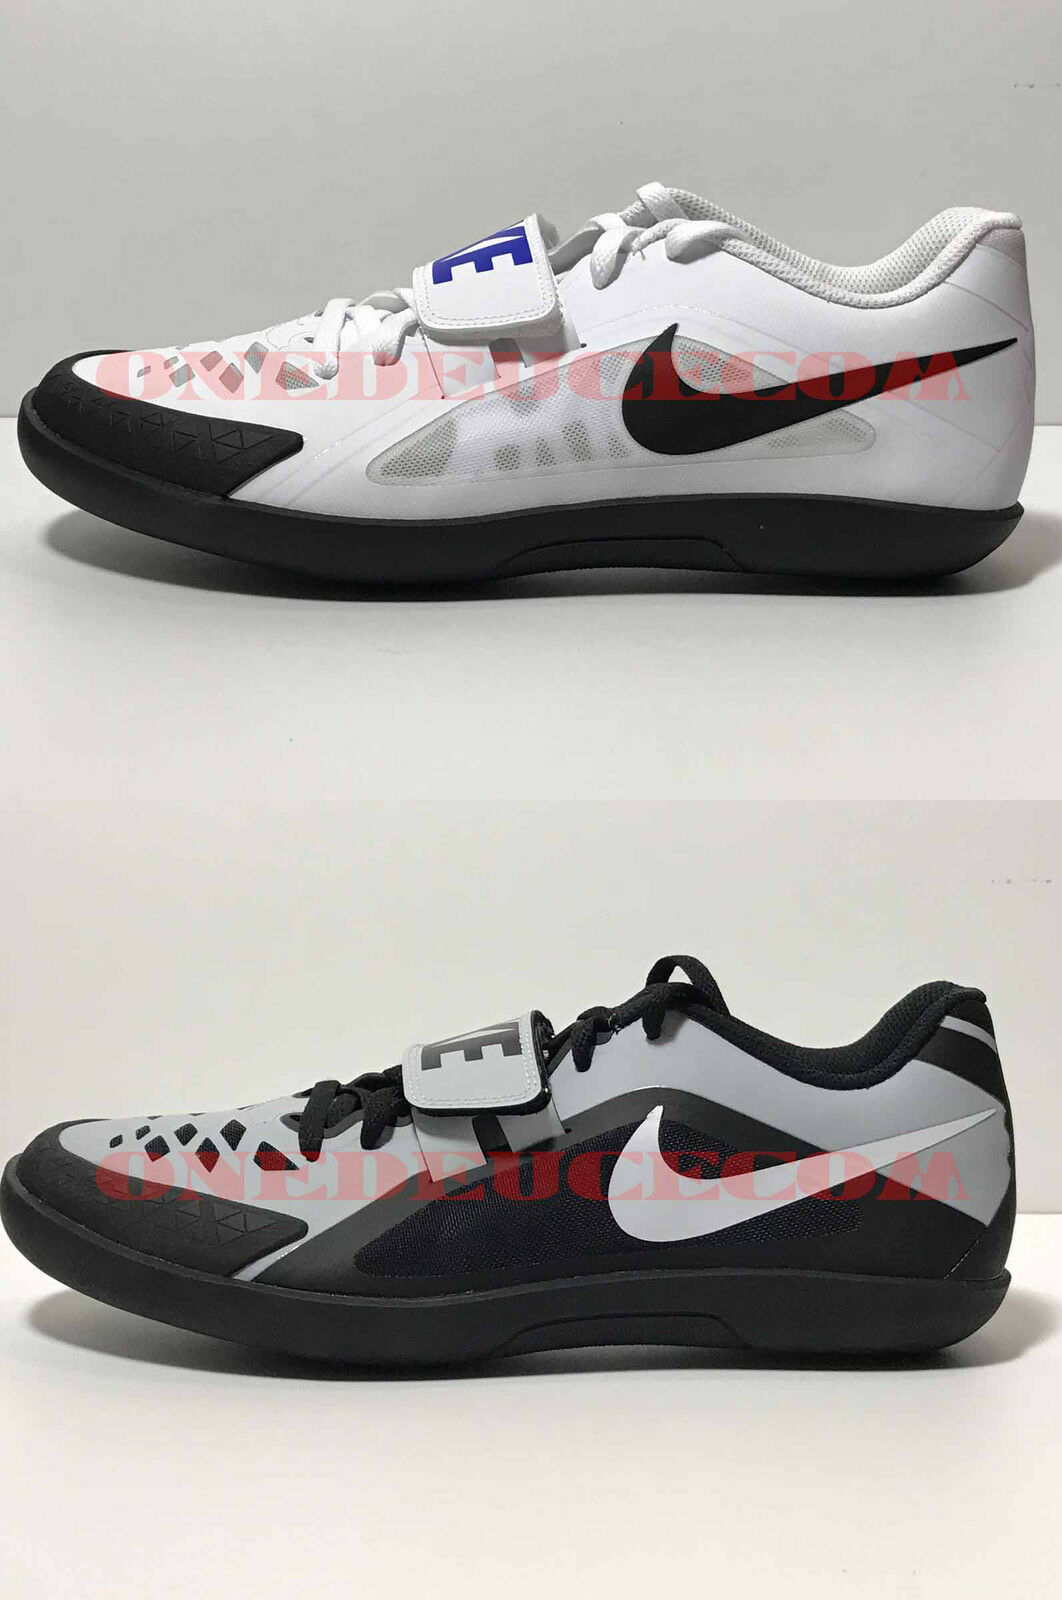 Nike Zoom color rival SD 2 Elige color Zoom blanco o negro comodo ef42e9